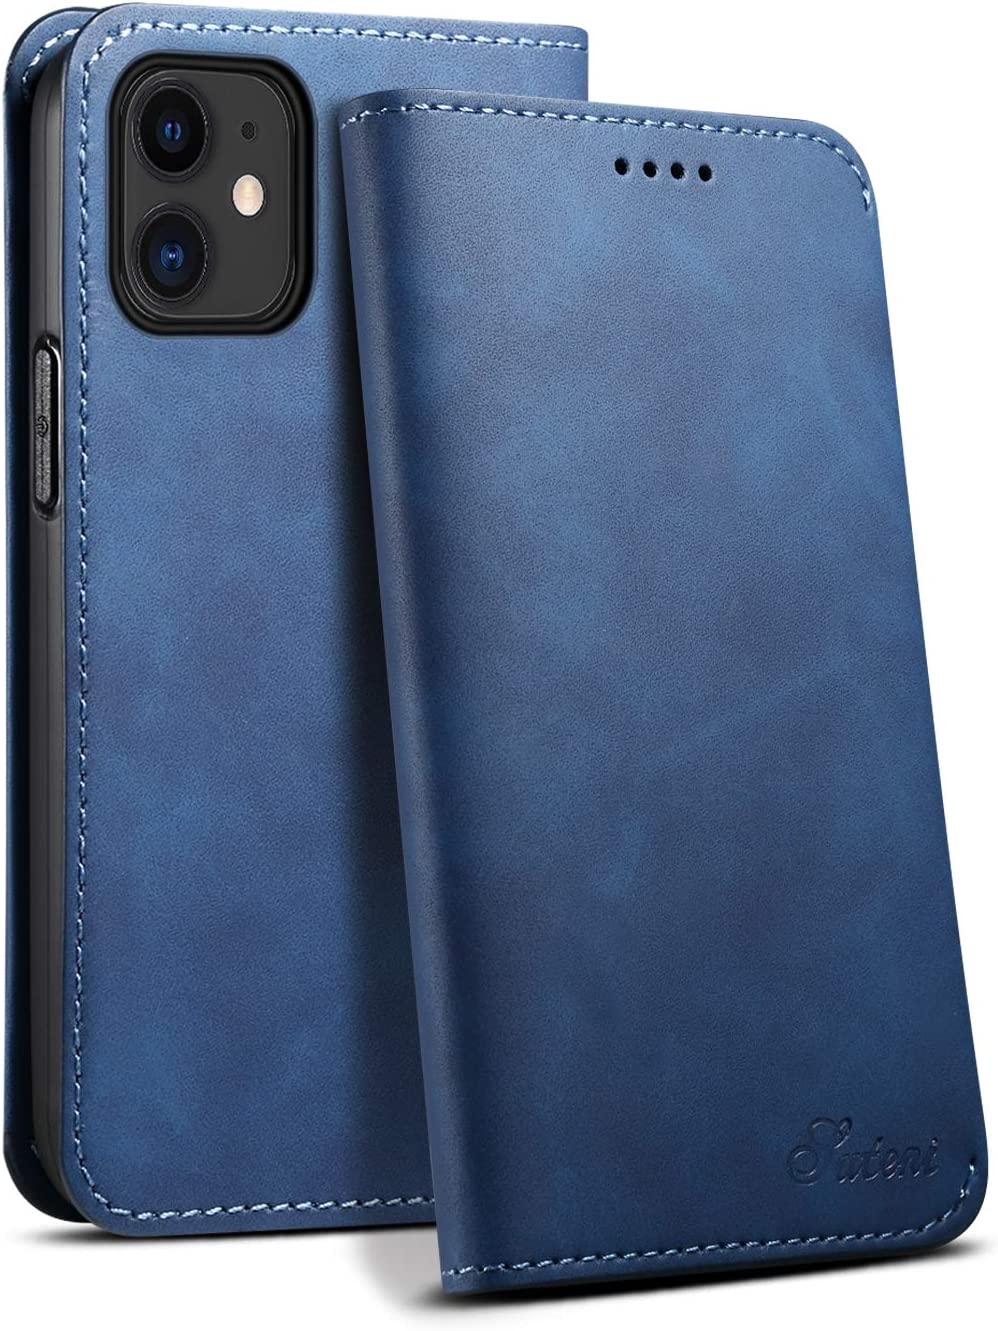 Leather Wallet Blue Case for iPhone 12 Mini 5.4 5G 2020 inches Kickstand Durable Soft Protective Folio Fashion for Unixes Cardslot Light